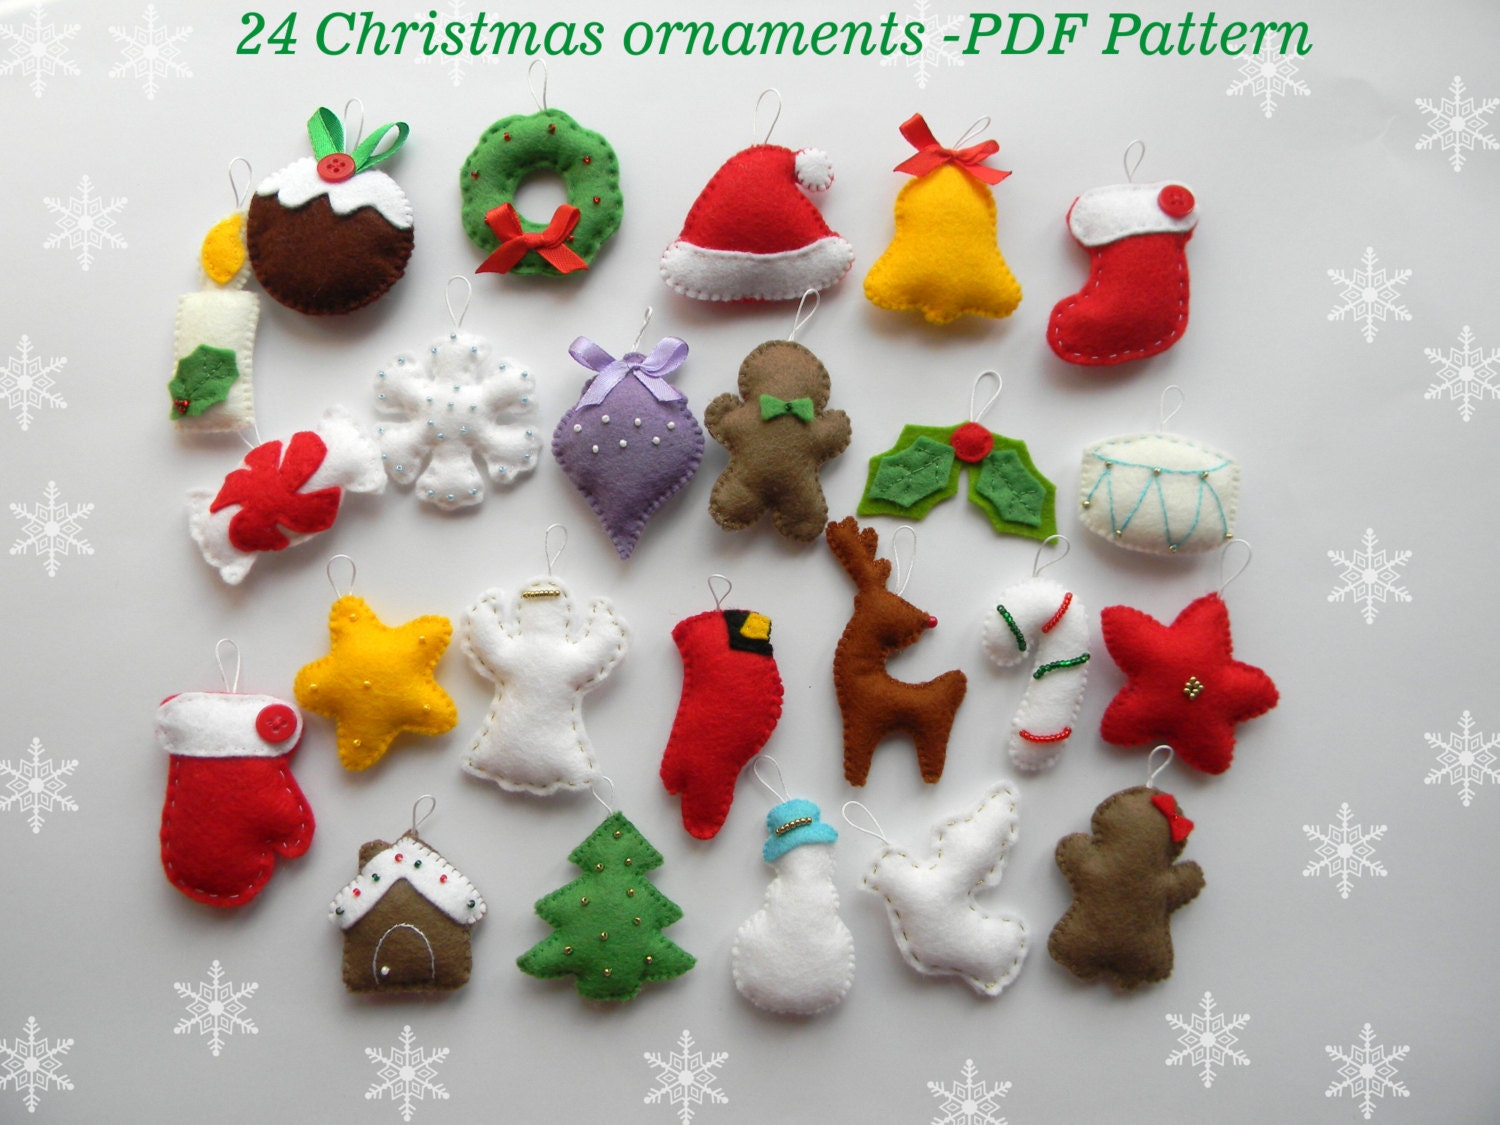 Christmas felt ornaments - Pdf Pattern 24 Advent Ornaments Pattren Christmas Ormaments Felt Christmas Ornament Easy Sewing Pattern Hand Sewing Diy Ornament